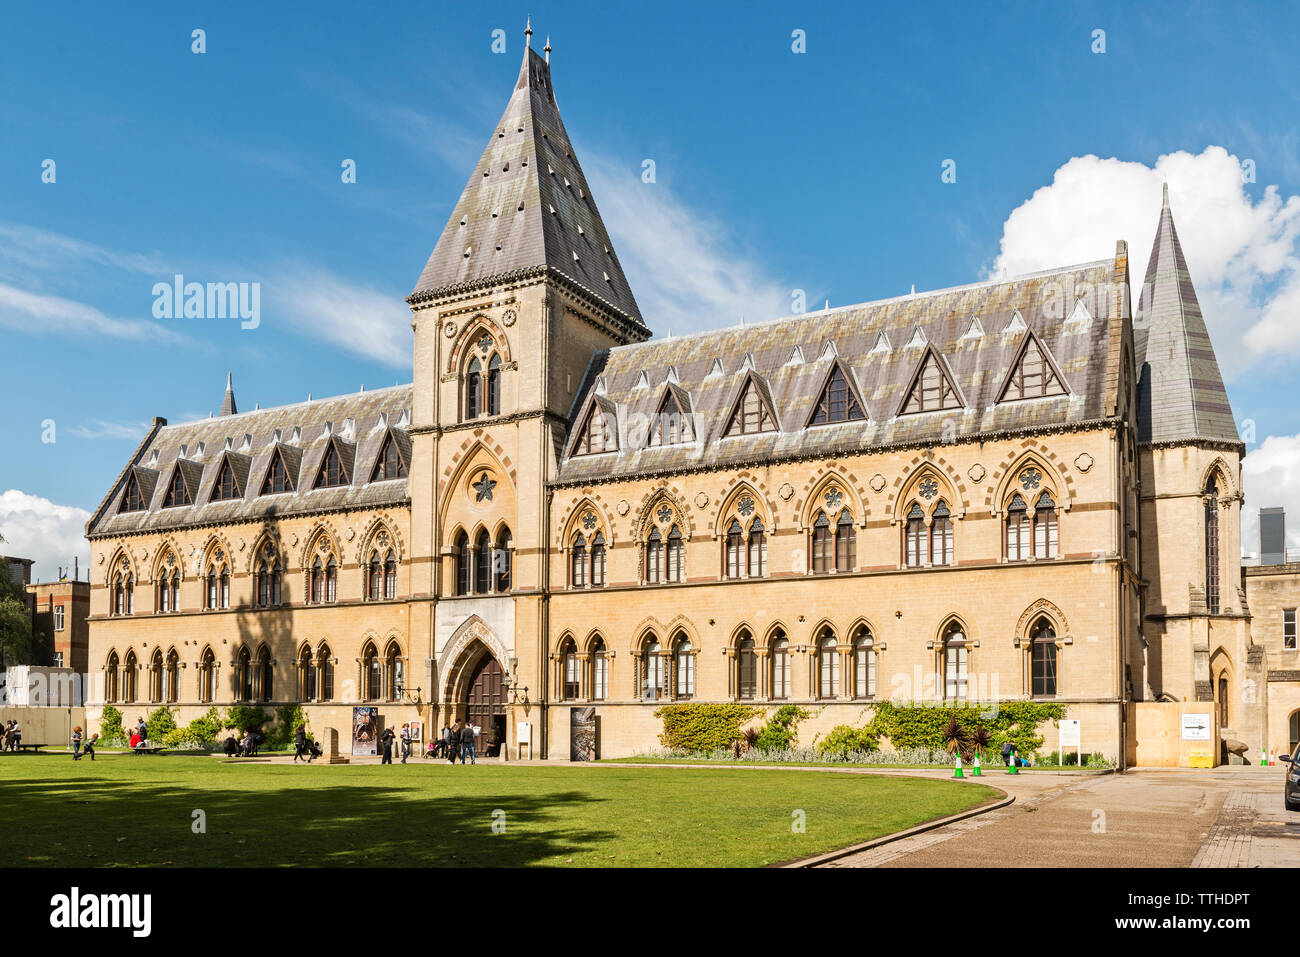 The Victorian facade of the Oxford University Museum of Natural History, founded in 1860. It adjoins the Pitt Rivers Museum of ethnography - Stock Image